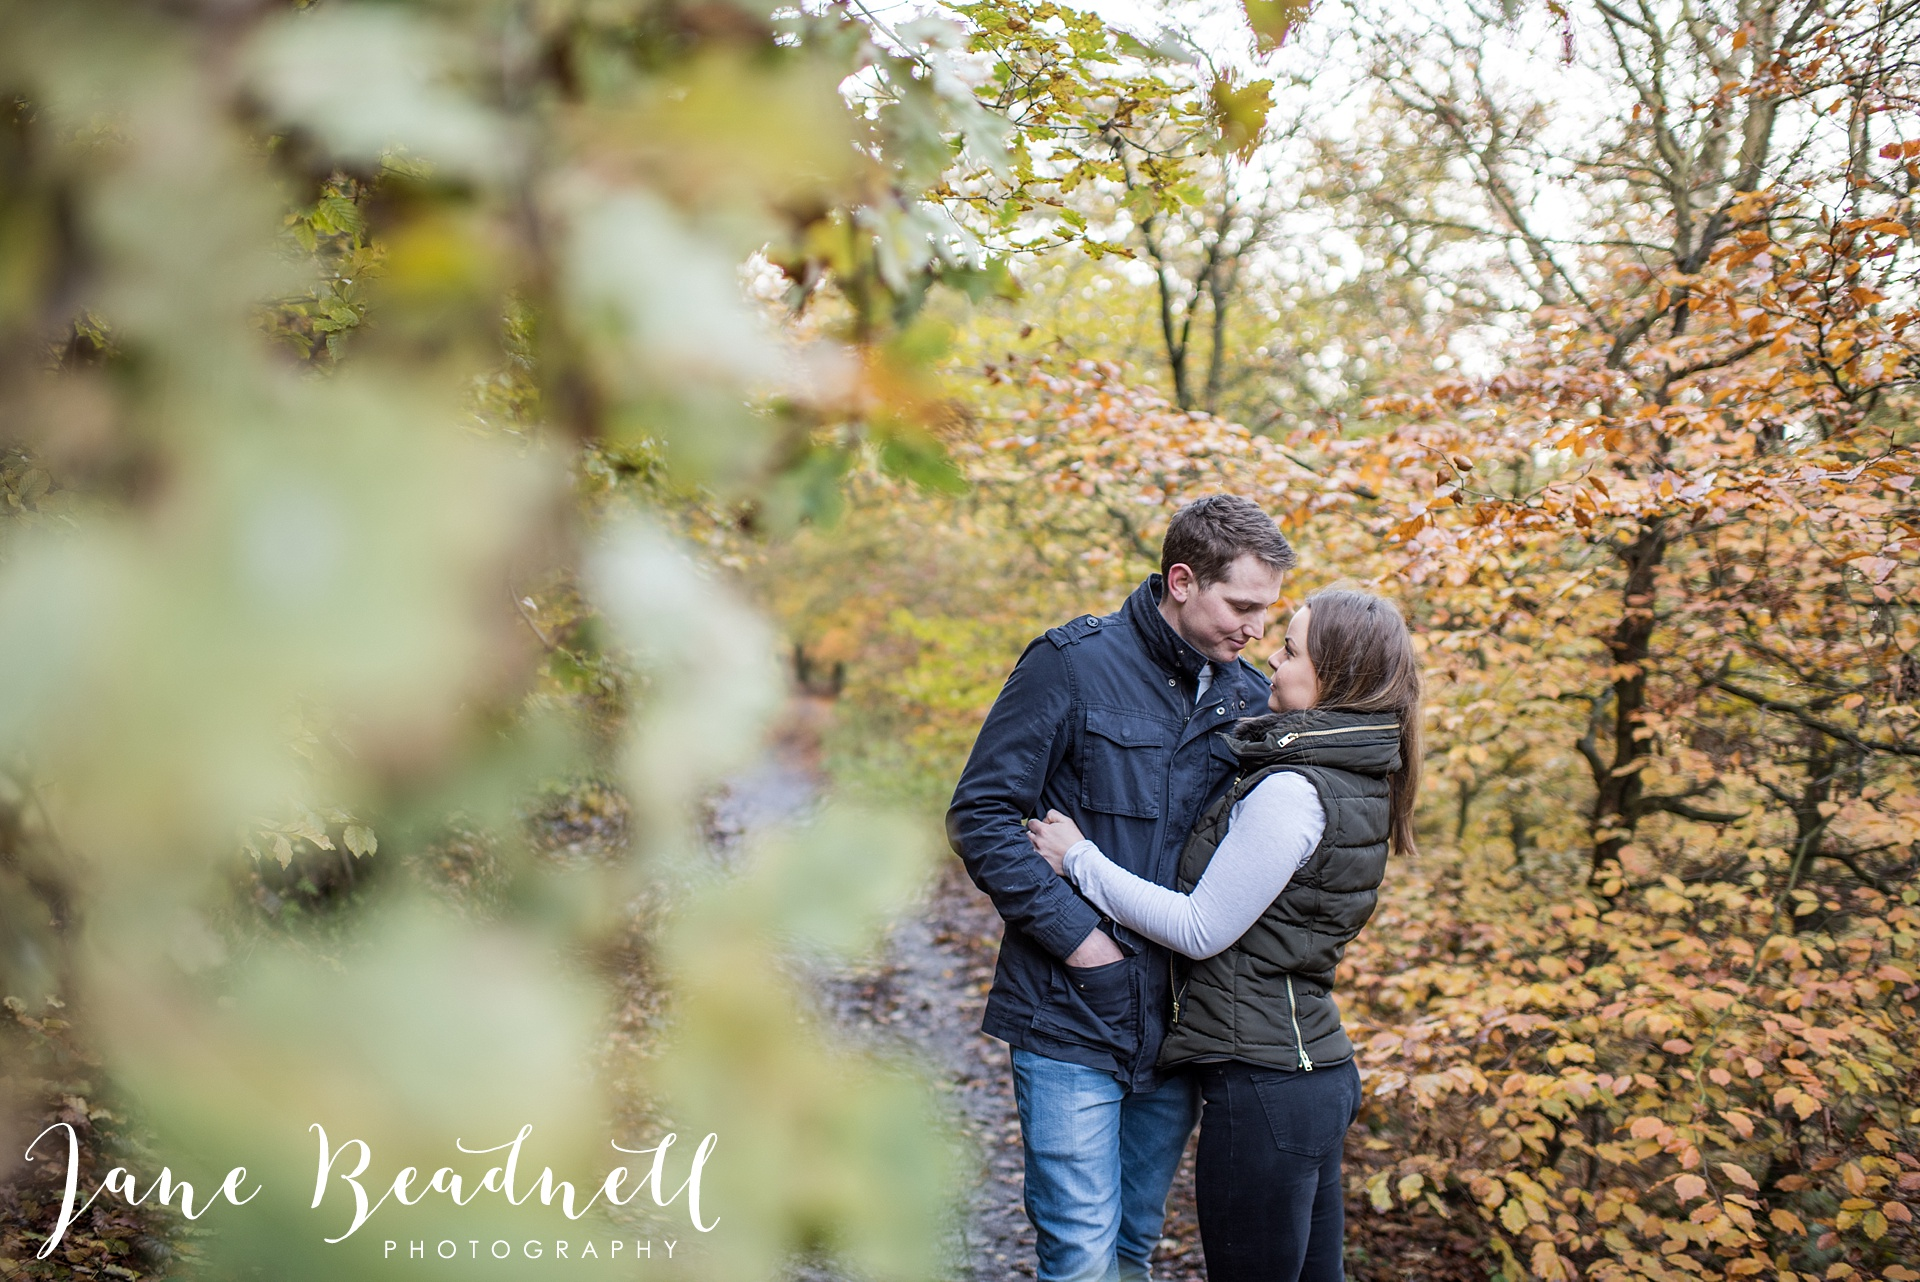 engagement-shoot-yorkshire-wedding-photographer-jane-beadnell-photography-uk-and-destination-wedding-photographer-engagement-shoot_0013